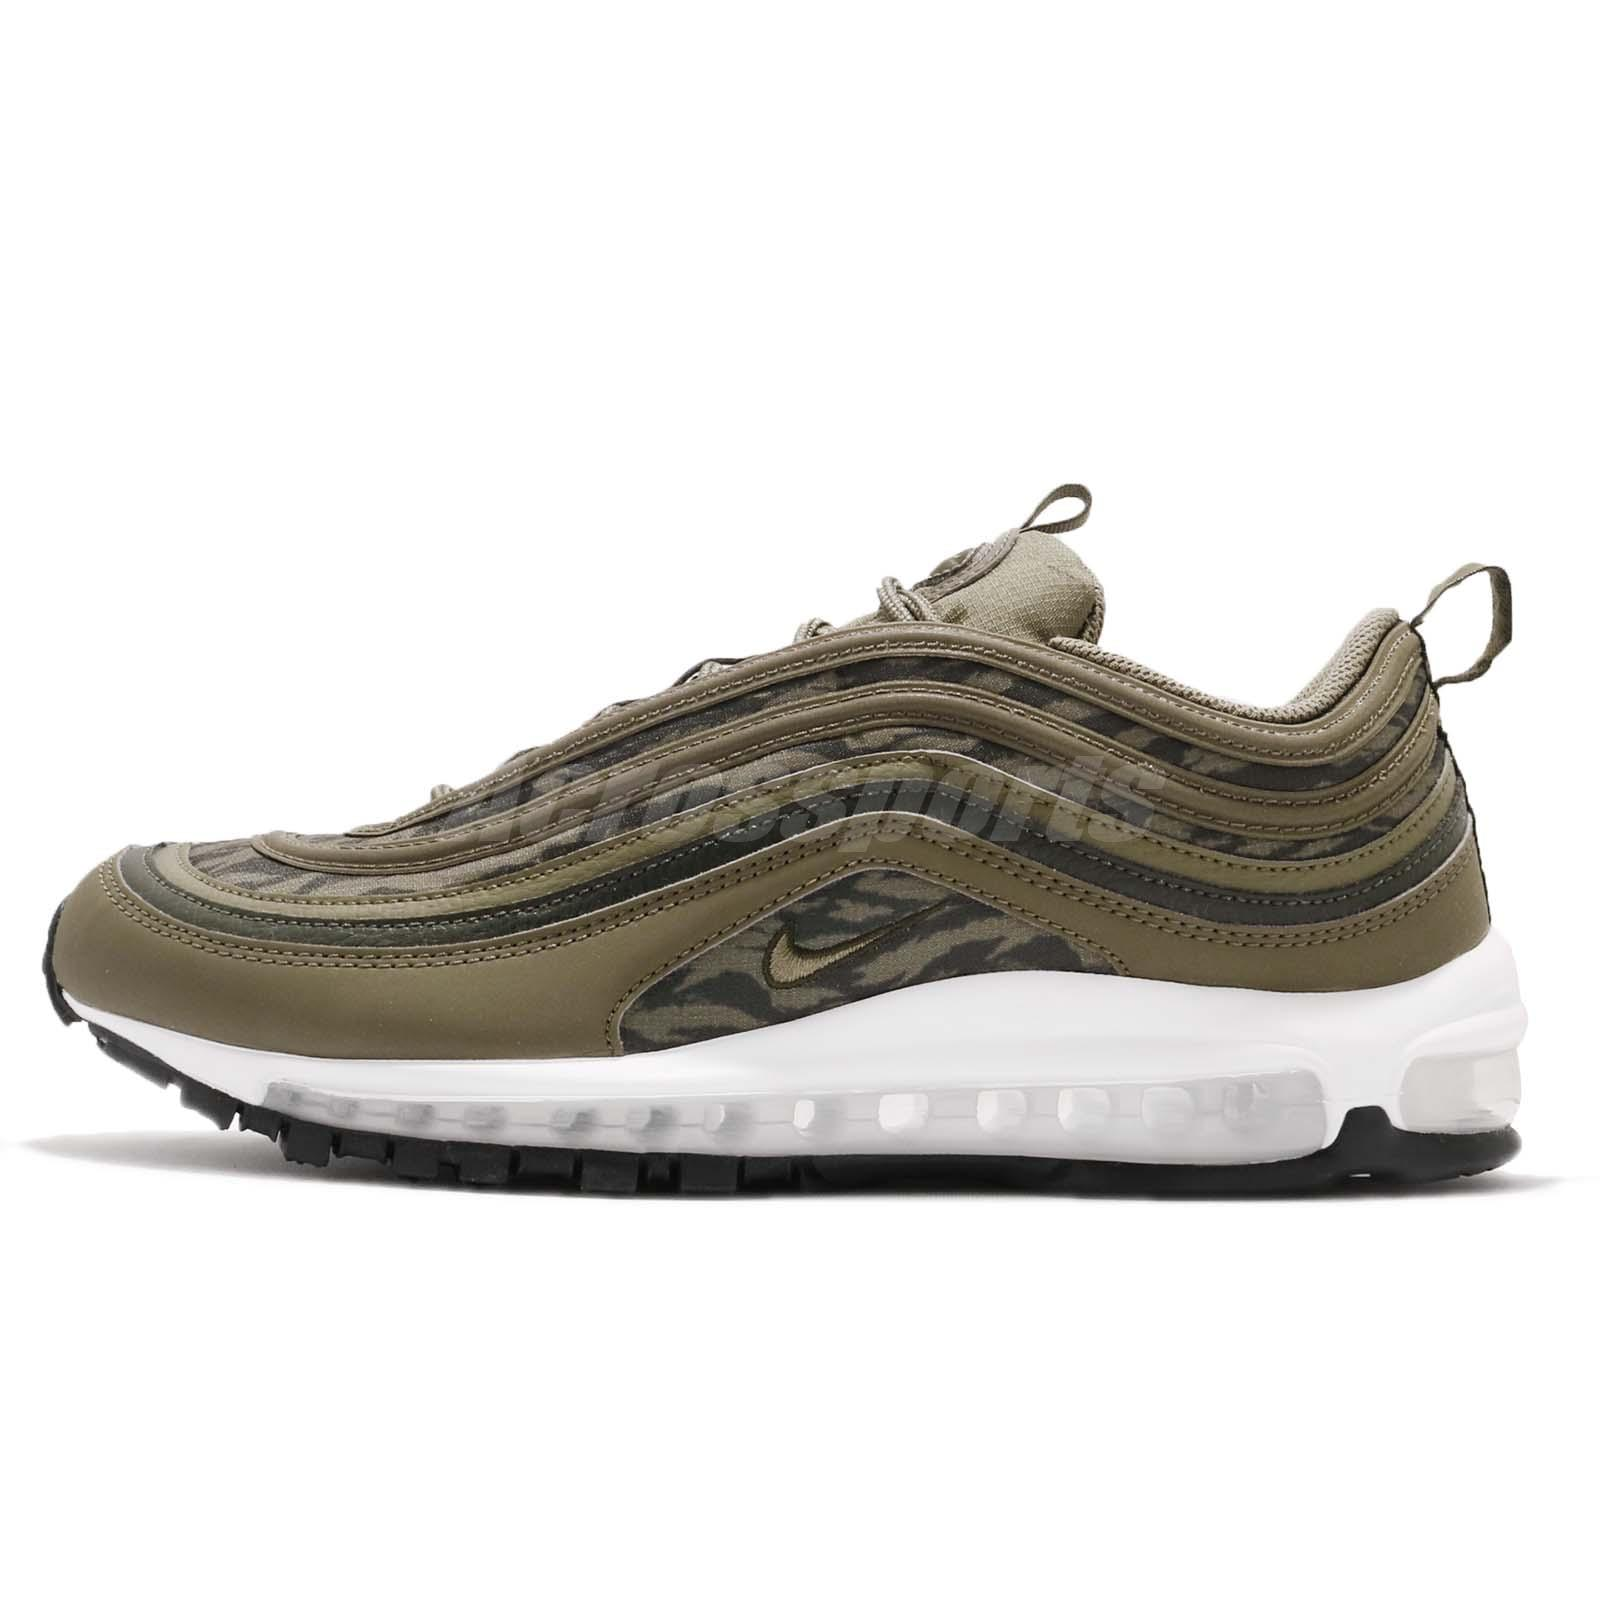 1740581774185 Nike Air Max 97 AOP Tiger Camo Olive Sequoia White Men Running Shoes  AQ4132-200